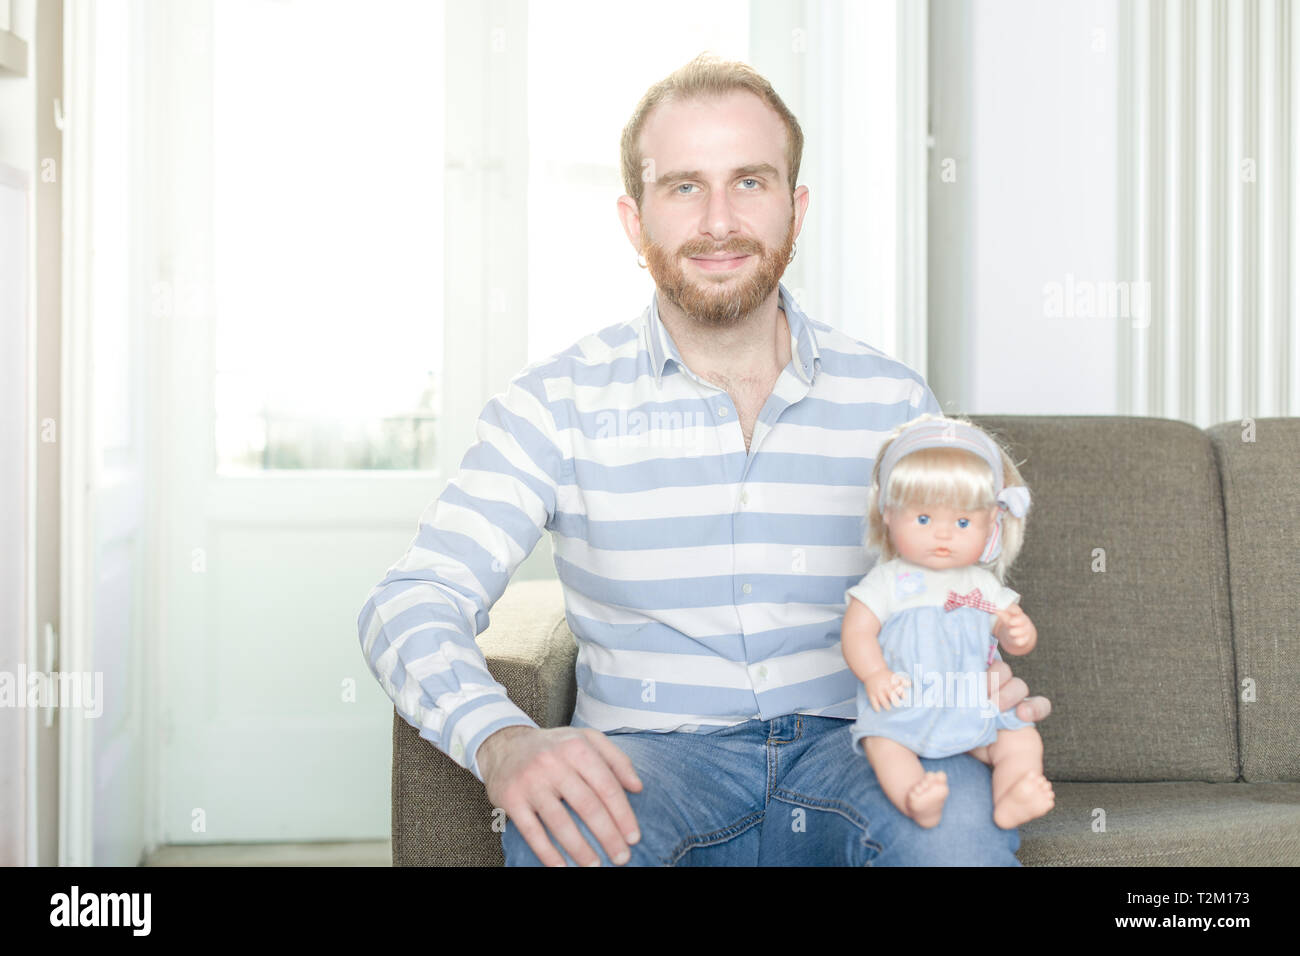 Smiling Redhead Man on a Couch with a Doll Sitting on His Knee - Stock Image